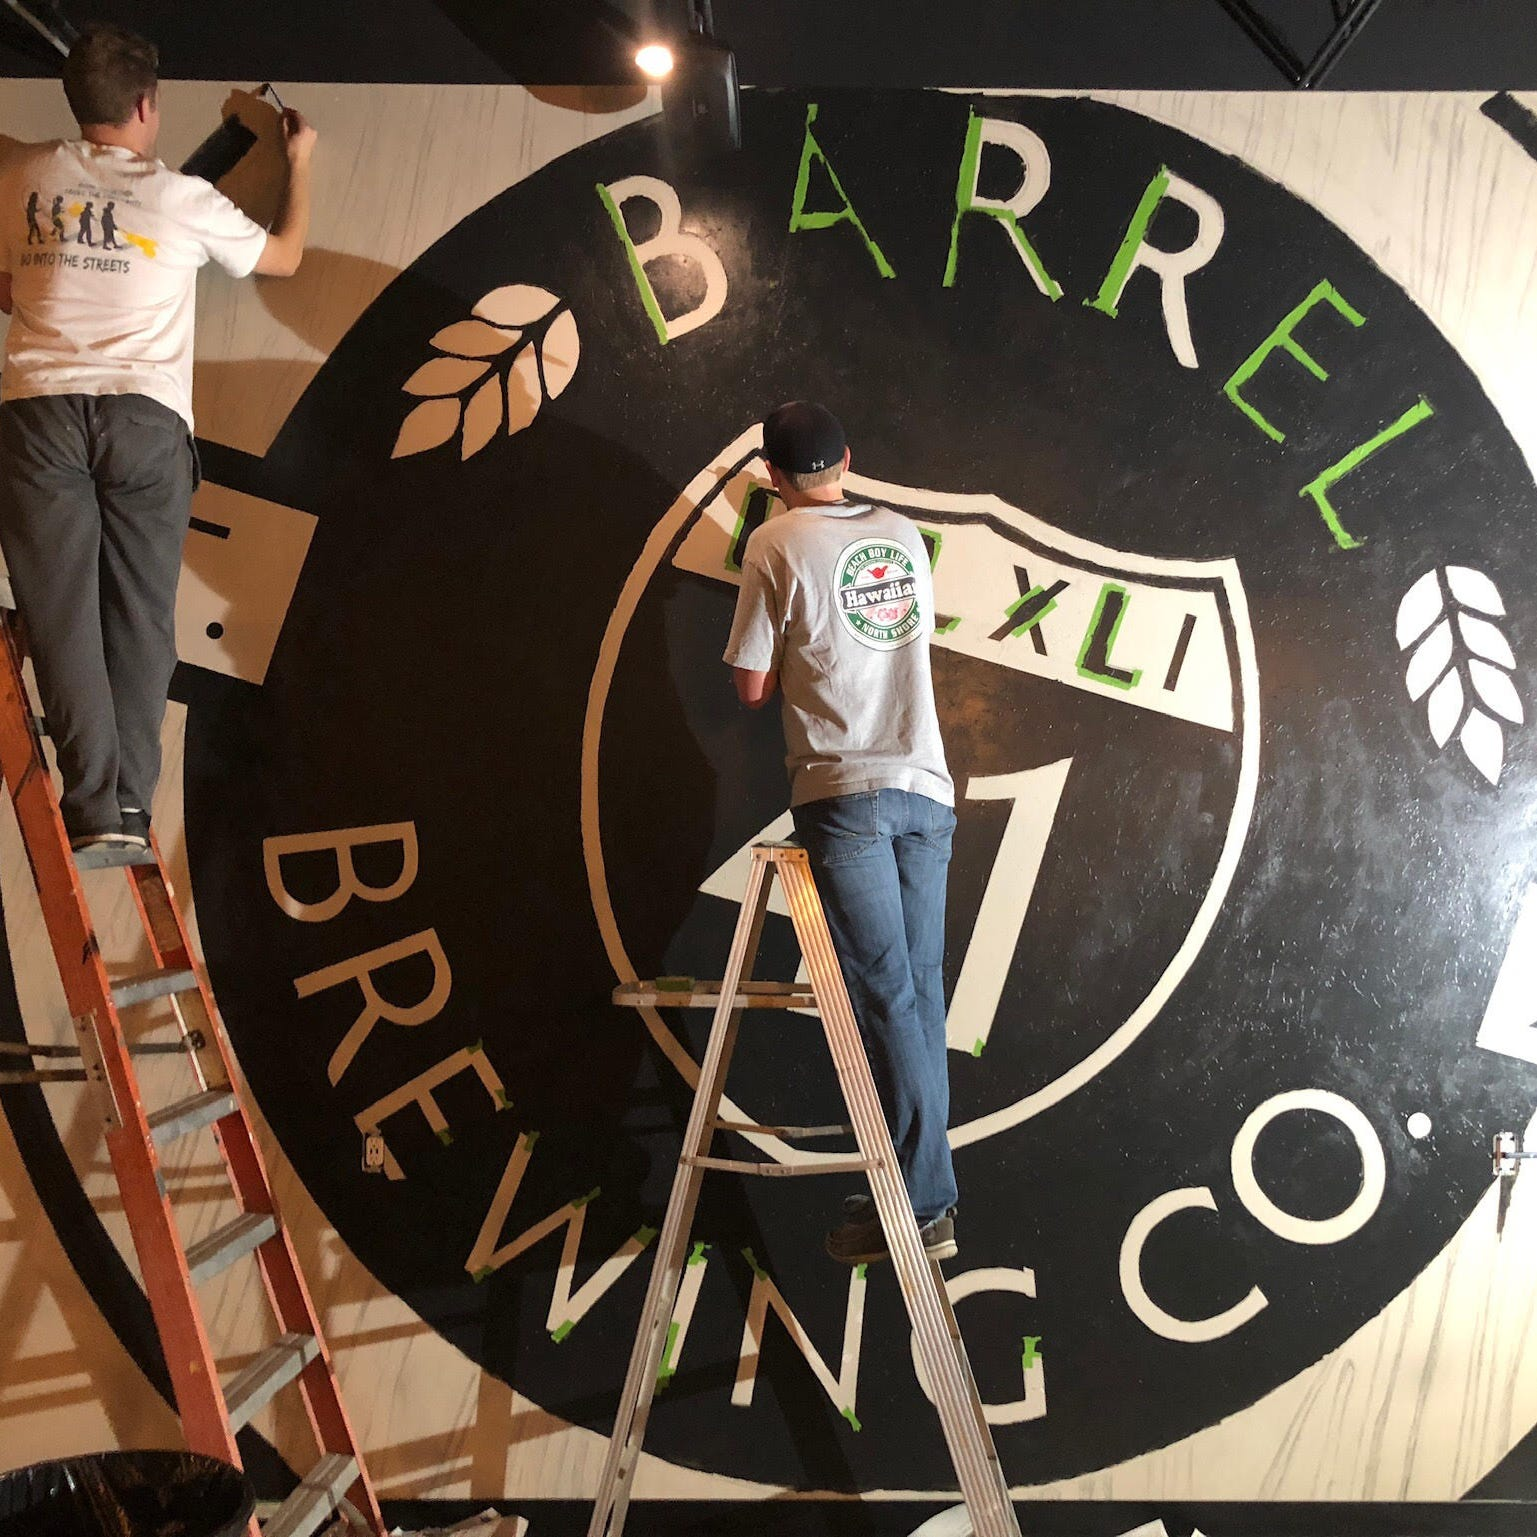 The Buzz: Barrel 41 Brewing Co., a new brewery, opens in Neenah